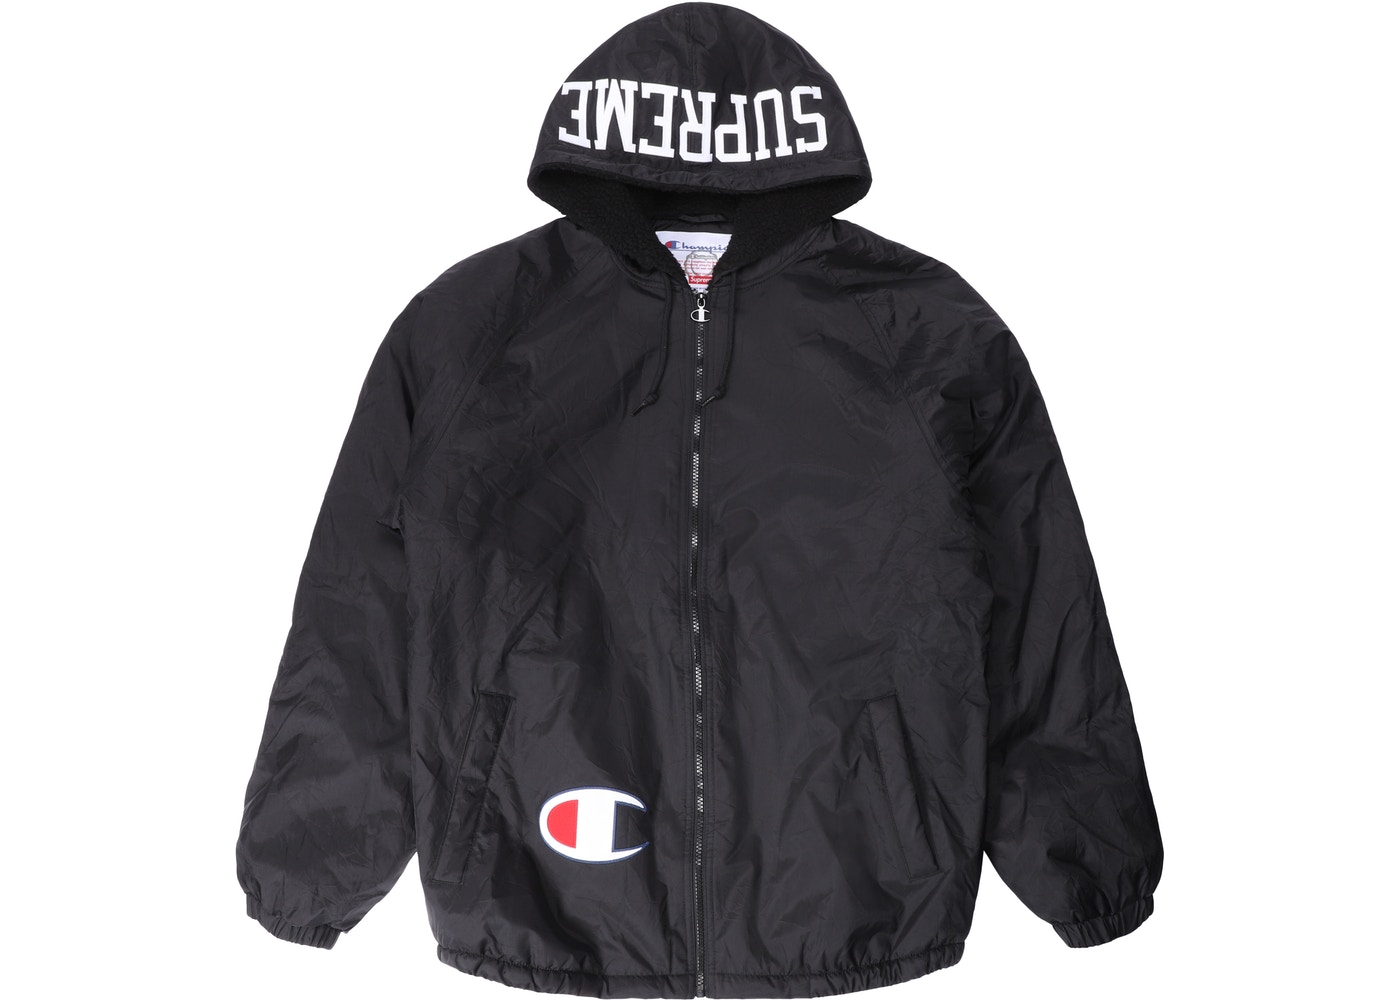 Hooded Champion Sherpa Jacket Lined Navy Supreme cL3Aq4R5j